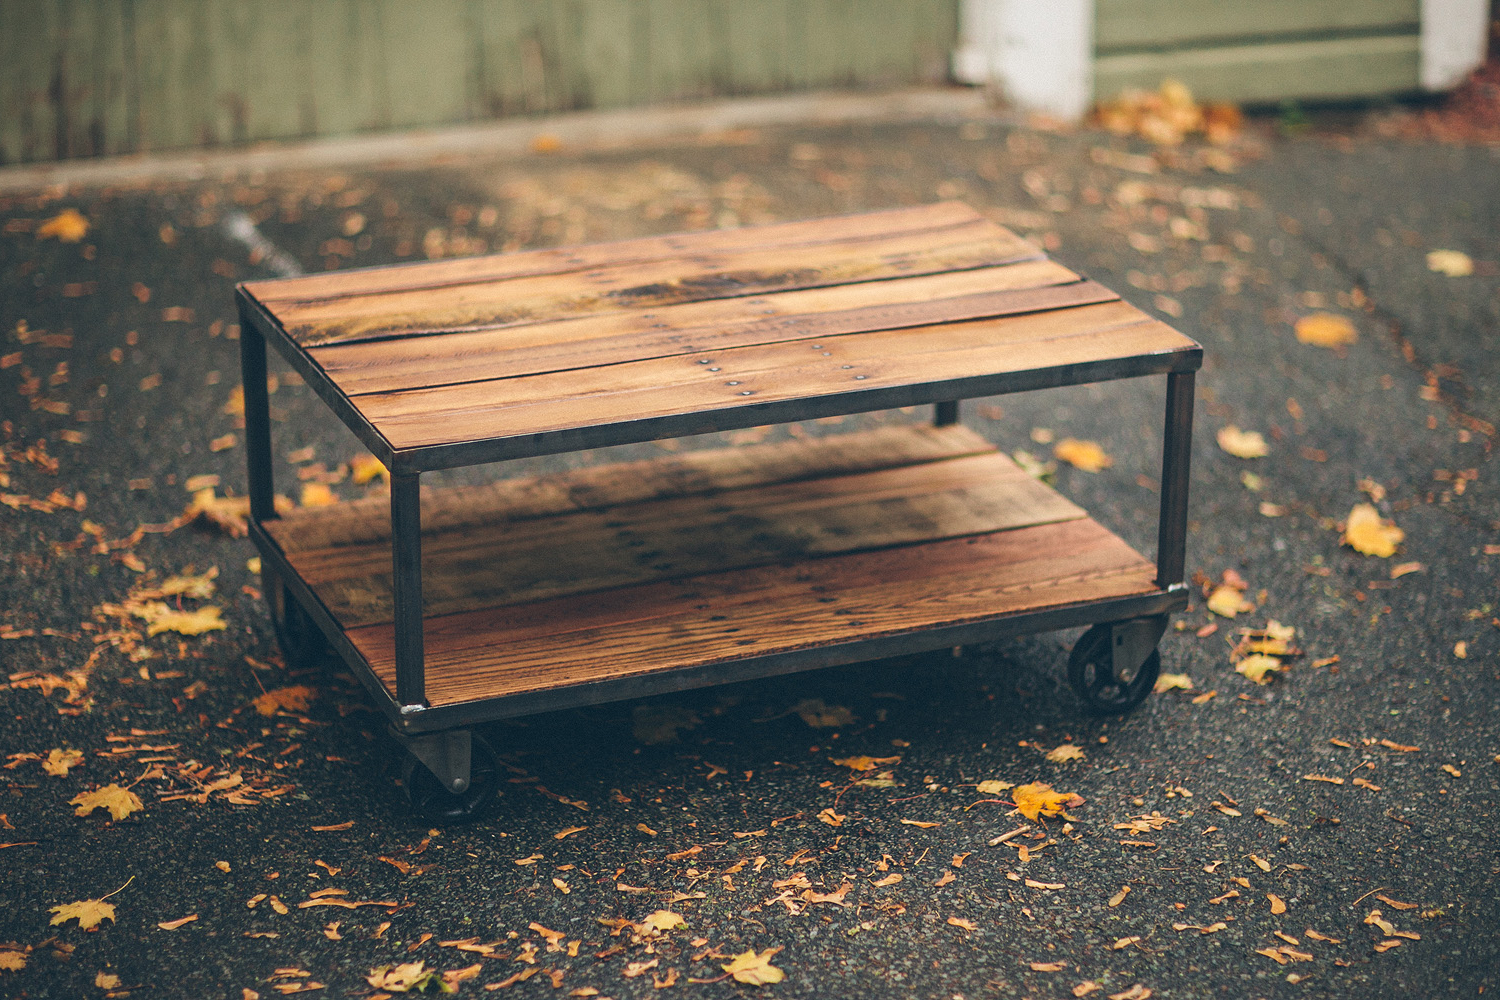 Most Recent Vintage Casters: Perfect For A Reclaimed Wood Coffee Table – With Autumn Cocktail Tables With Casters (View 13 of 20)